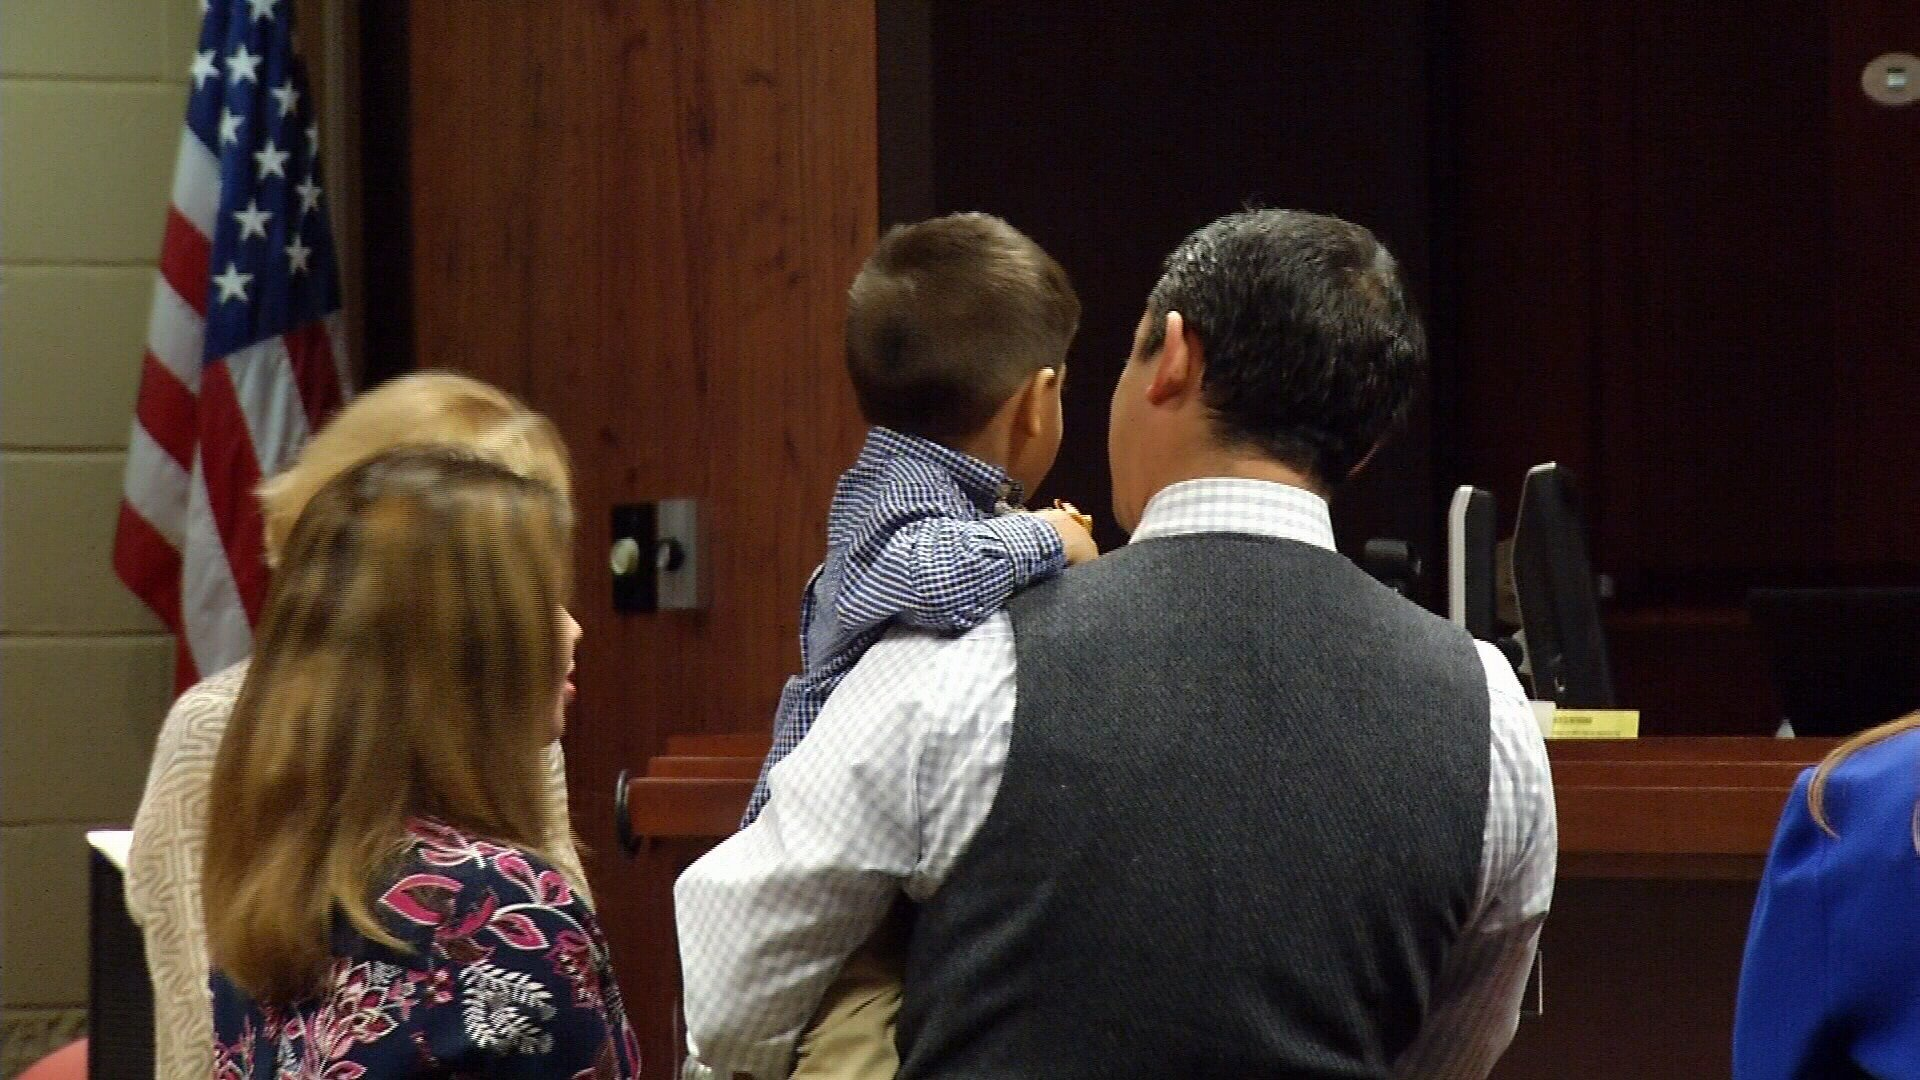 FILE PHOTO: One of several adoptive families at County Court 5. Photo Take: November 10, 2016.